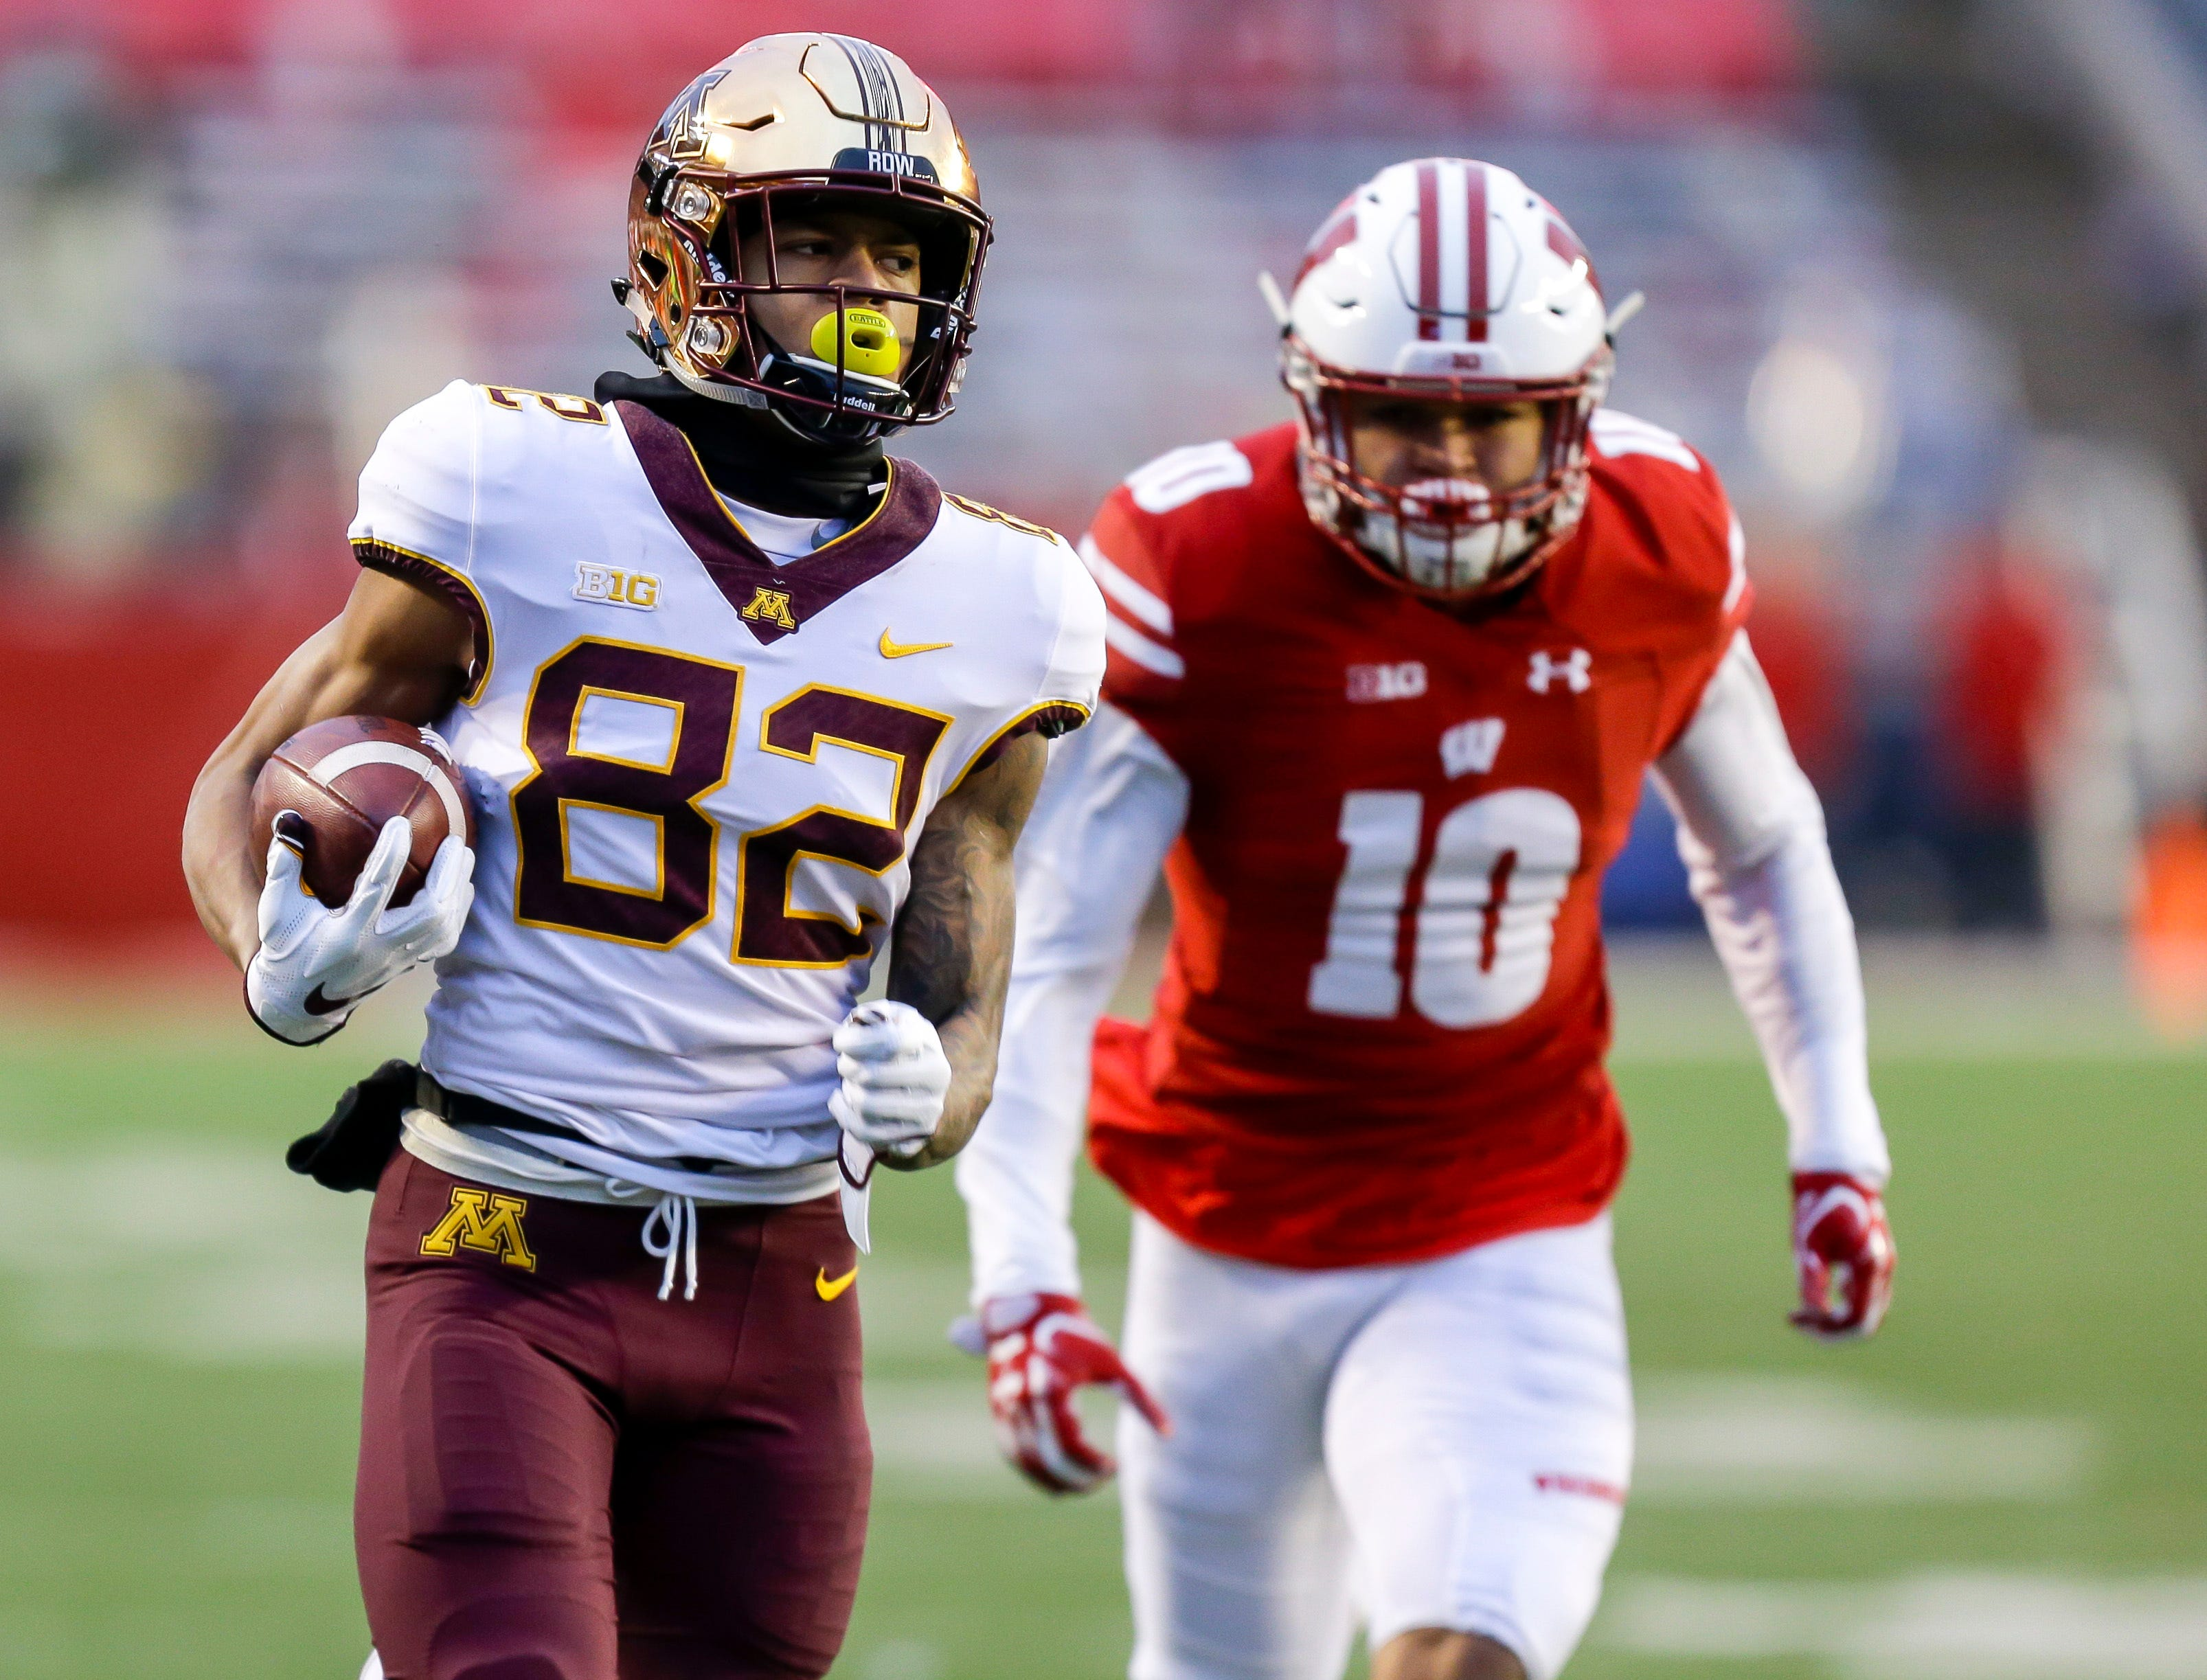 9. Minnesota (6-6, 3-6) – Credit the Golden Gophers for getting an unexpected victory at Wisconsin in the final week to become bowl-eligible for the first time under coach P.J. Fleck, but also point to the easy non-conference schedule that got the Gophers three quick wins before they struggled to find much rhythm in Big Ten play. That said, they've got another game to play. Last week: 12.